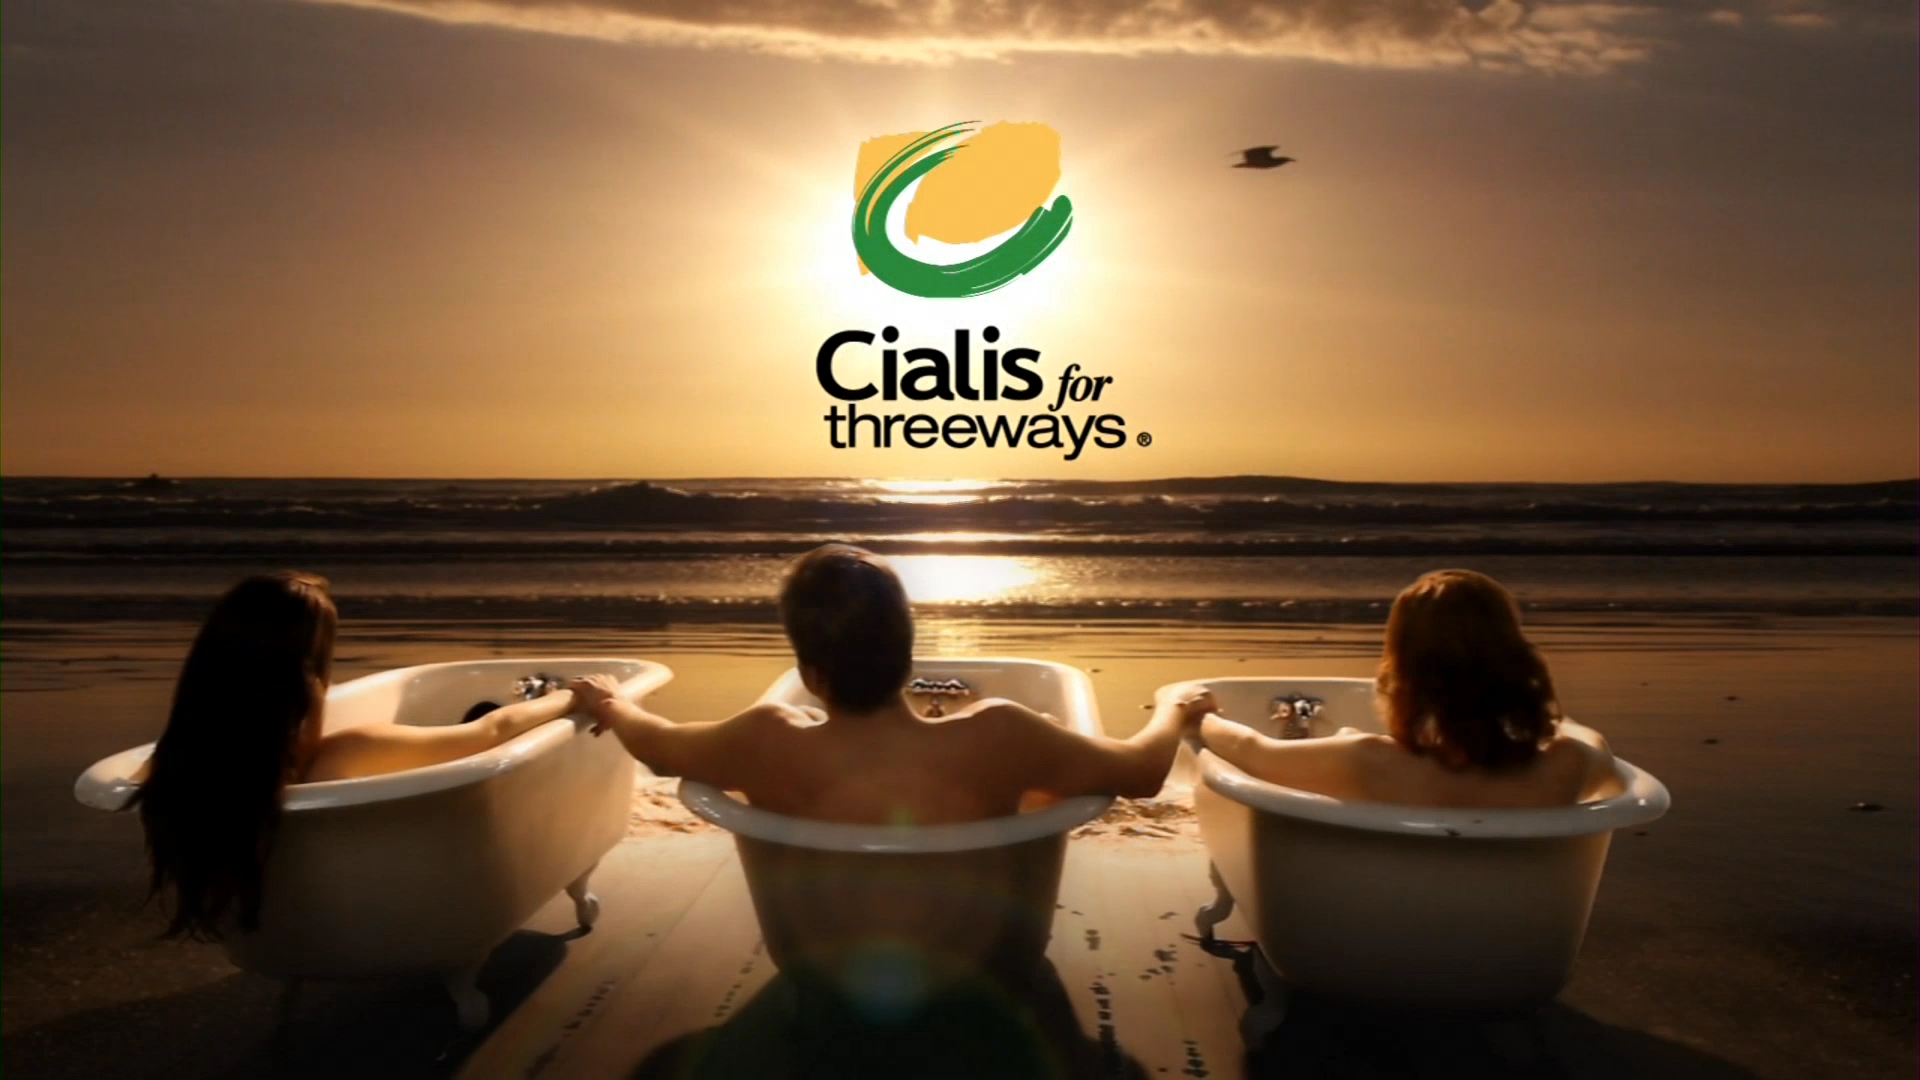 cialis print advertisement - photo #7